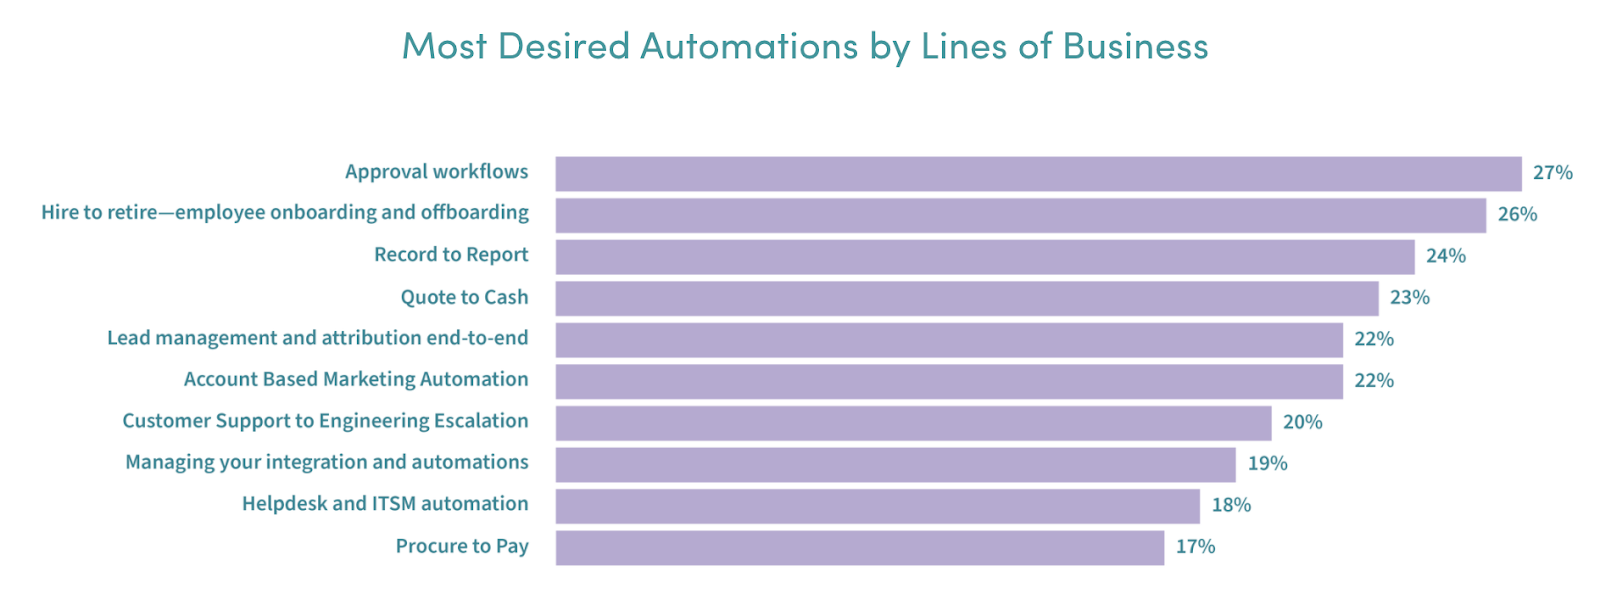 Horizontal bars that display the most desired automations by lines of business